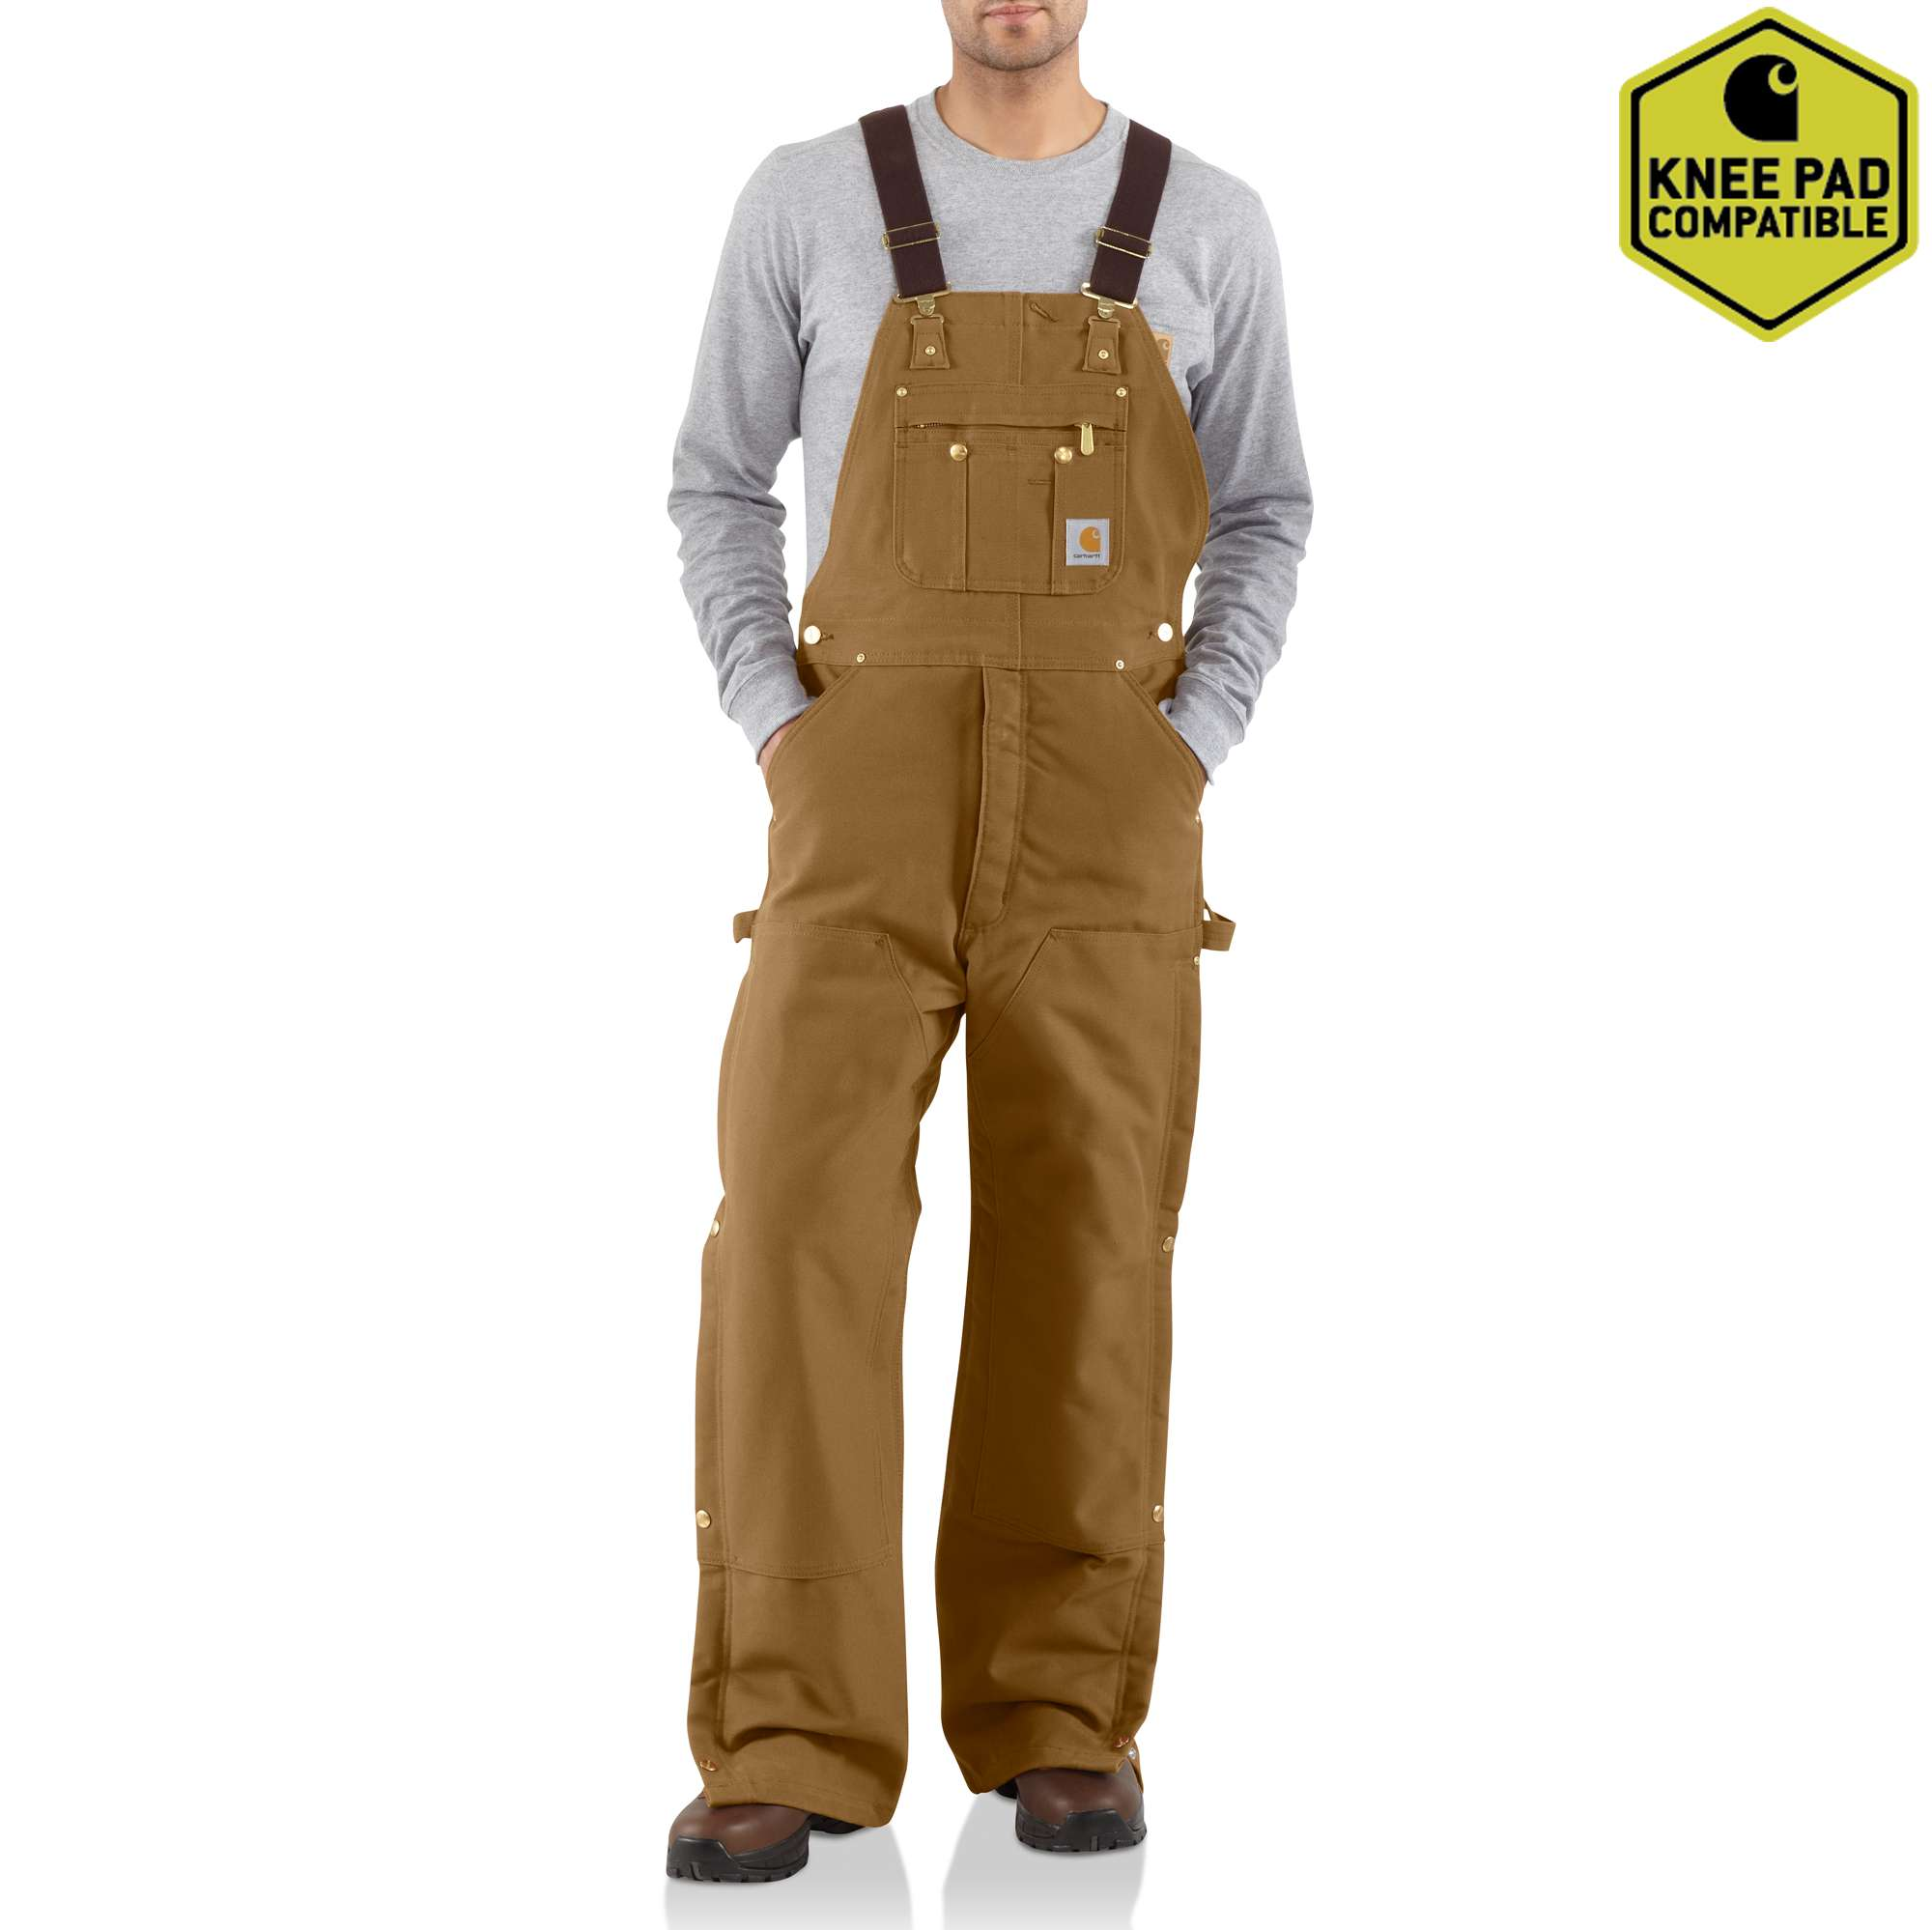 Men's Duck Zip-to-Thigh Bib Overall/Quilt Lined, Brown, swatch